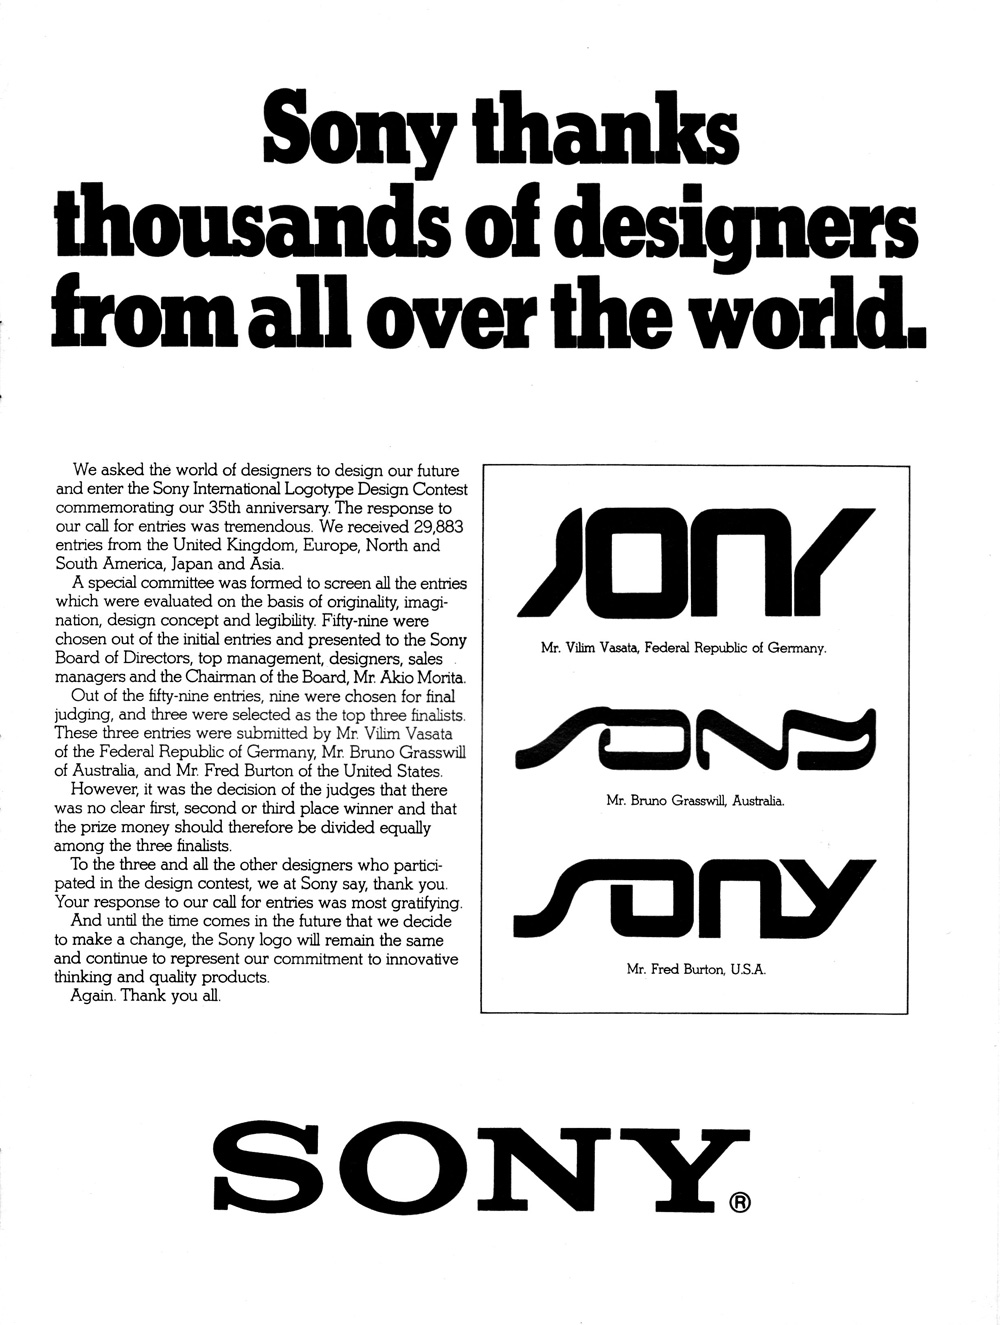 Sony asked the public to redesign its logo in 1981. It